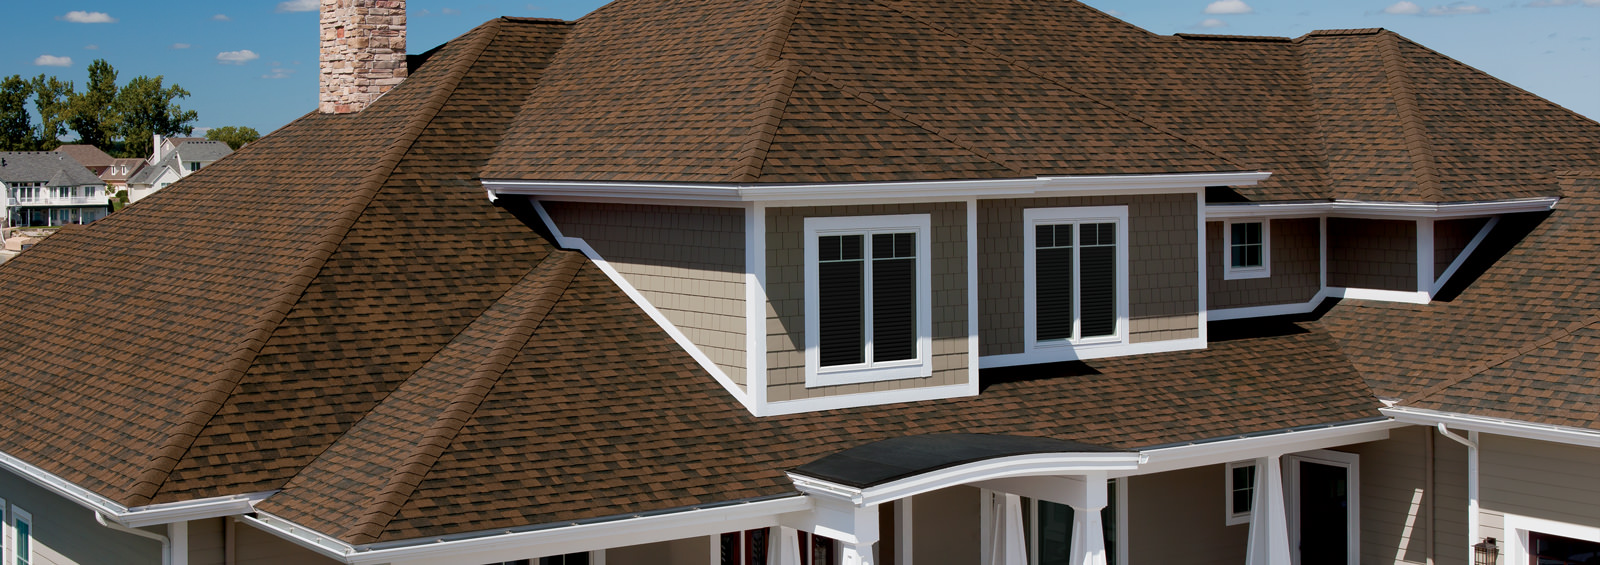 Owens Corning Roofing Shingles ( True Defination Duration